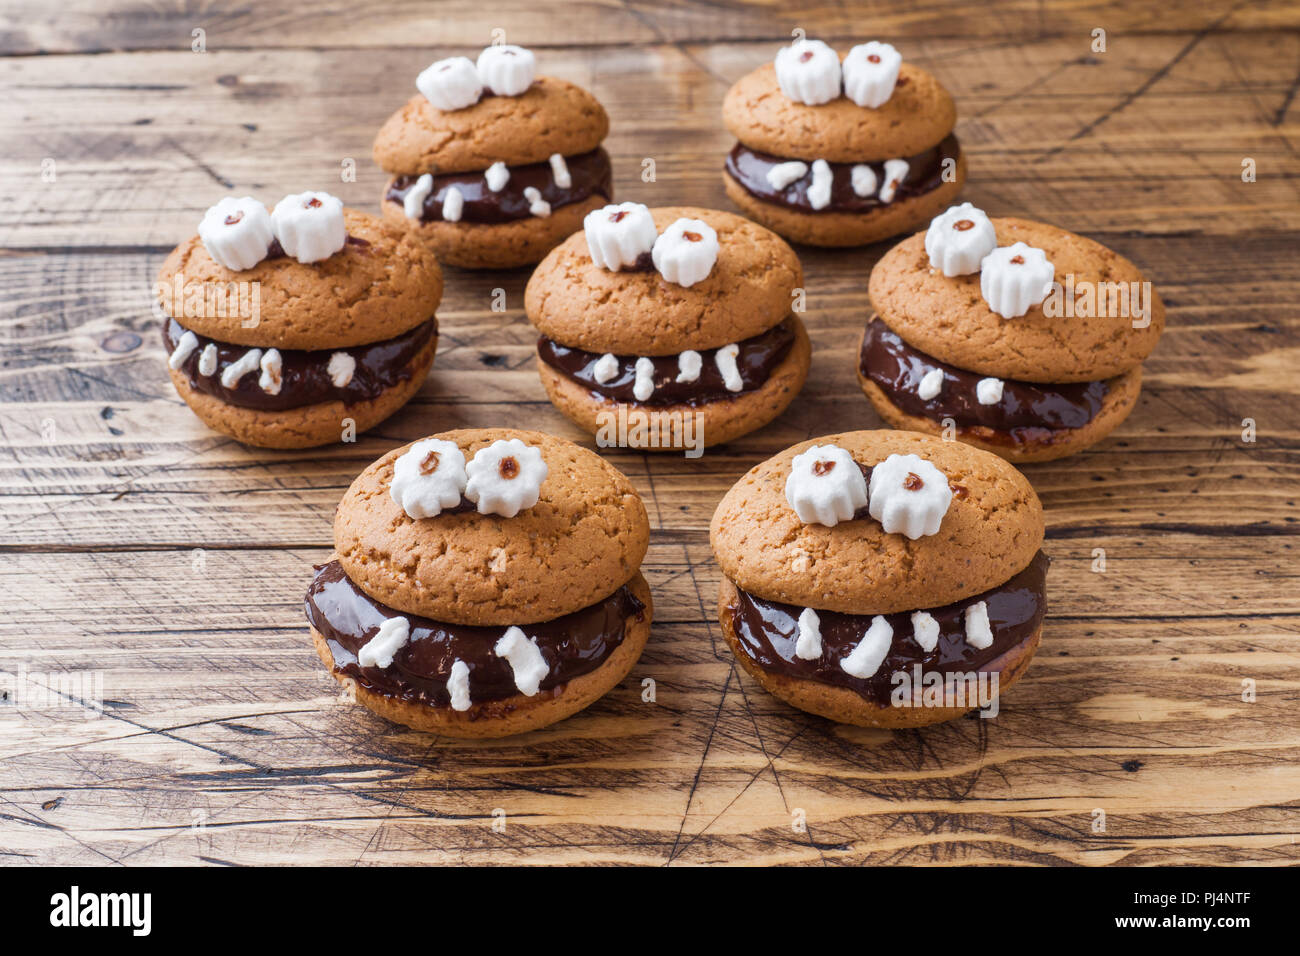 Cookies with chocolate paste in the form of monsters for Halloween. - Stock Image